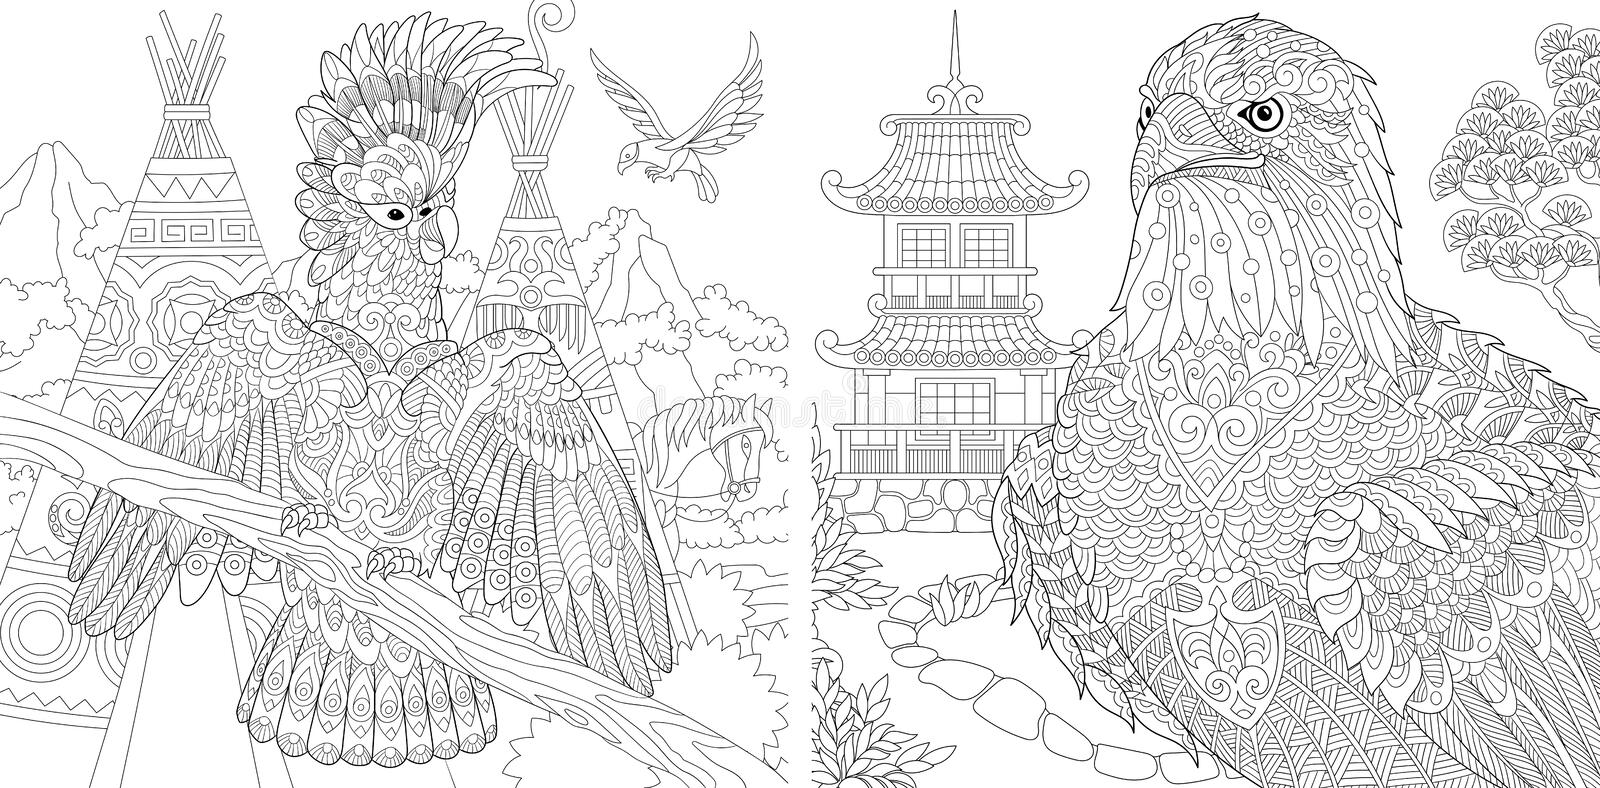 Coloring Pages. Coloring Book for adults. Colouring pictures with cockatoo and eagle. Antistress freehand sketch drawing with stock photos